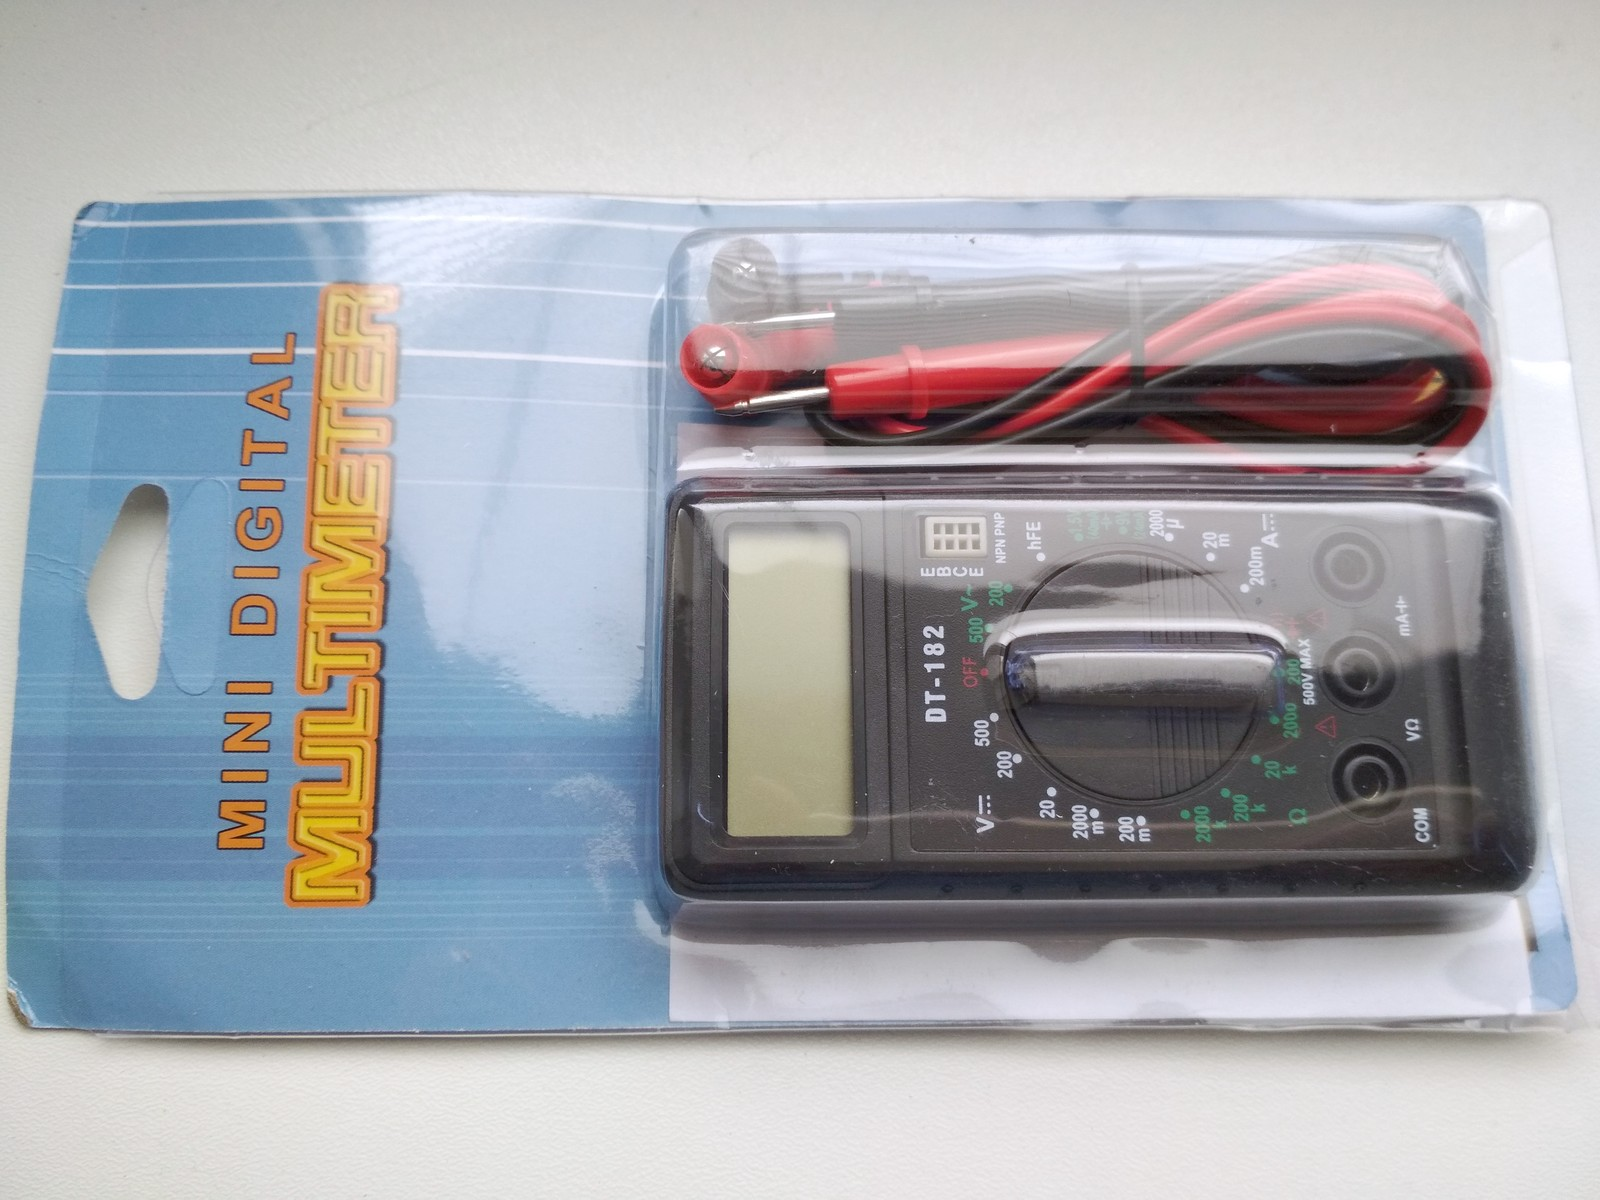 DT-182 Digital Mini Multimeter DC/AC Voltage Current Meter Handheld Pocket Voltmeter Ammeter Diode Triode Tester Multitester